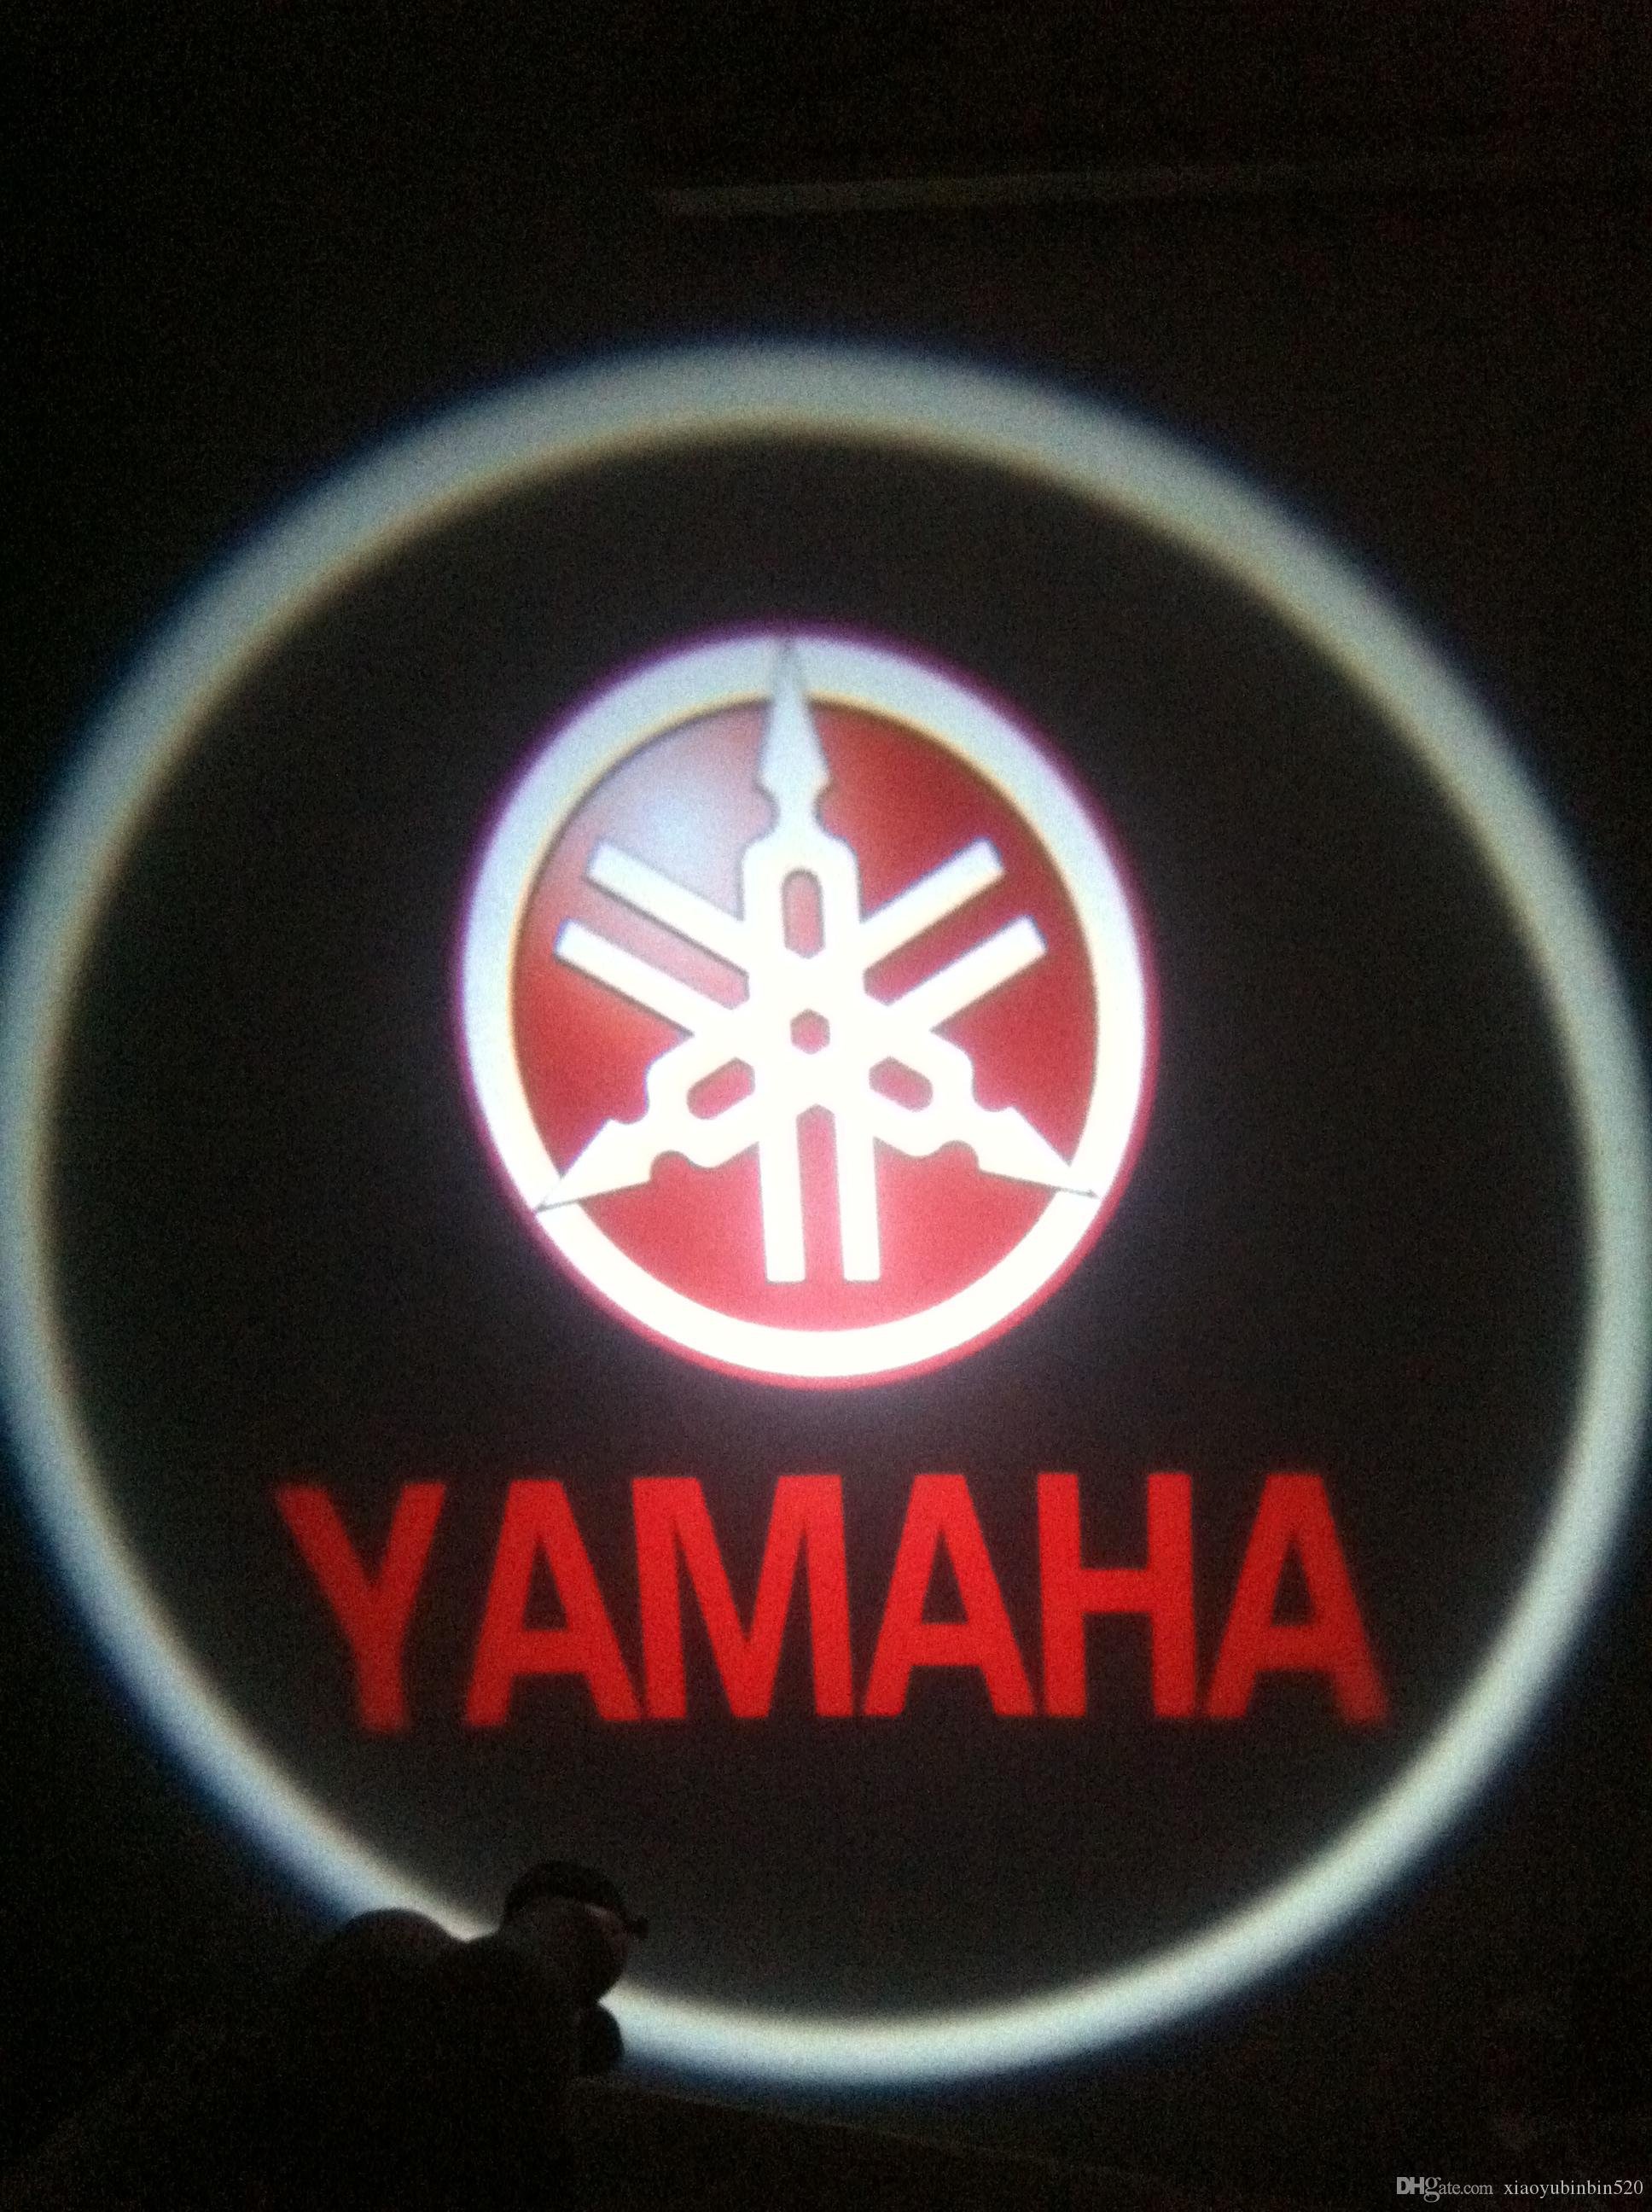 Chrysler led door projector courtesy puddle logo lights mr kustom - For Yamaha Ghost Shadow Cree Led Car Door Logo Led Laser Welcome Project Light 2th Yamaha Car Door Light Logo Light Online With 8 75 Piece On